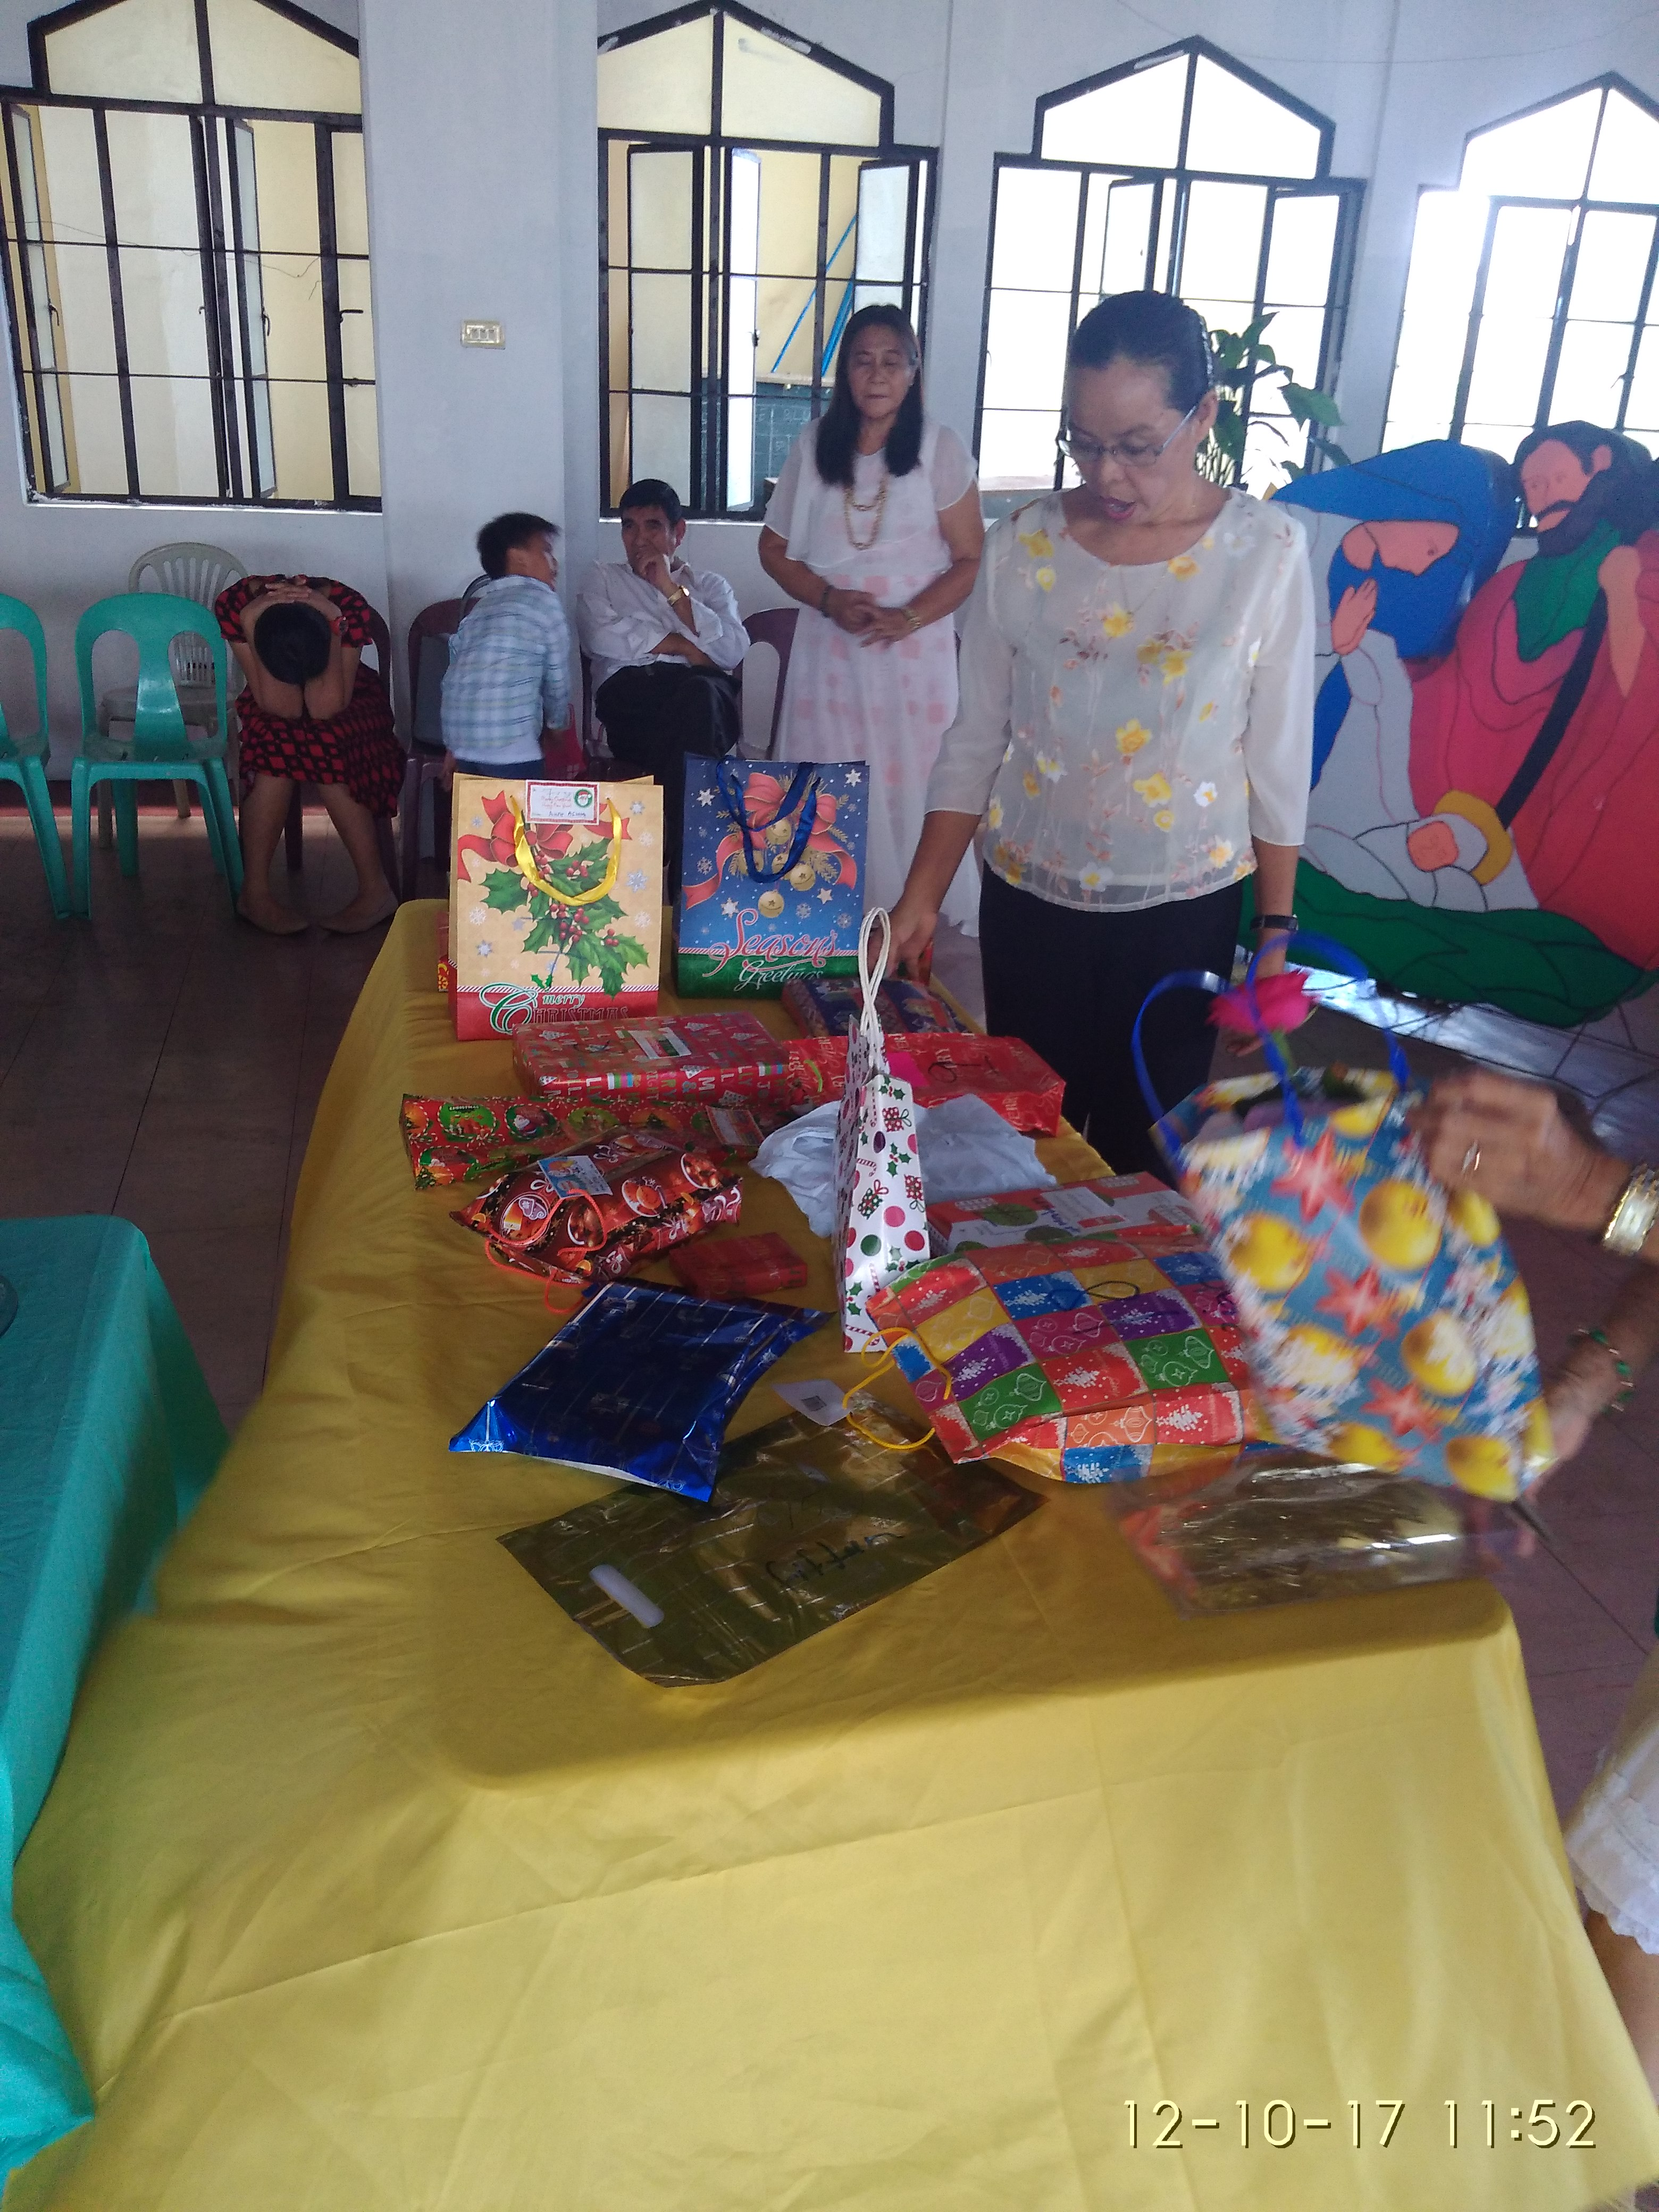 Exchanging gifts . . .